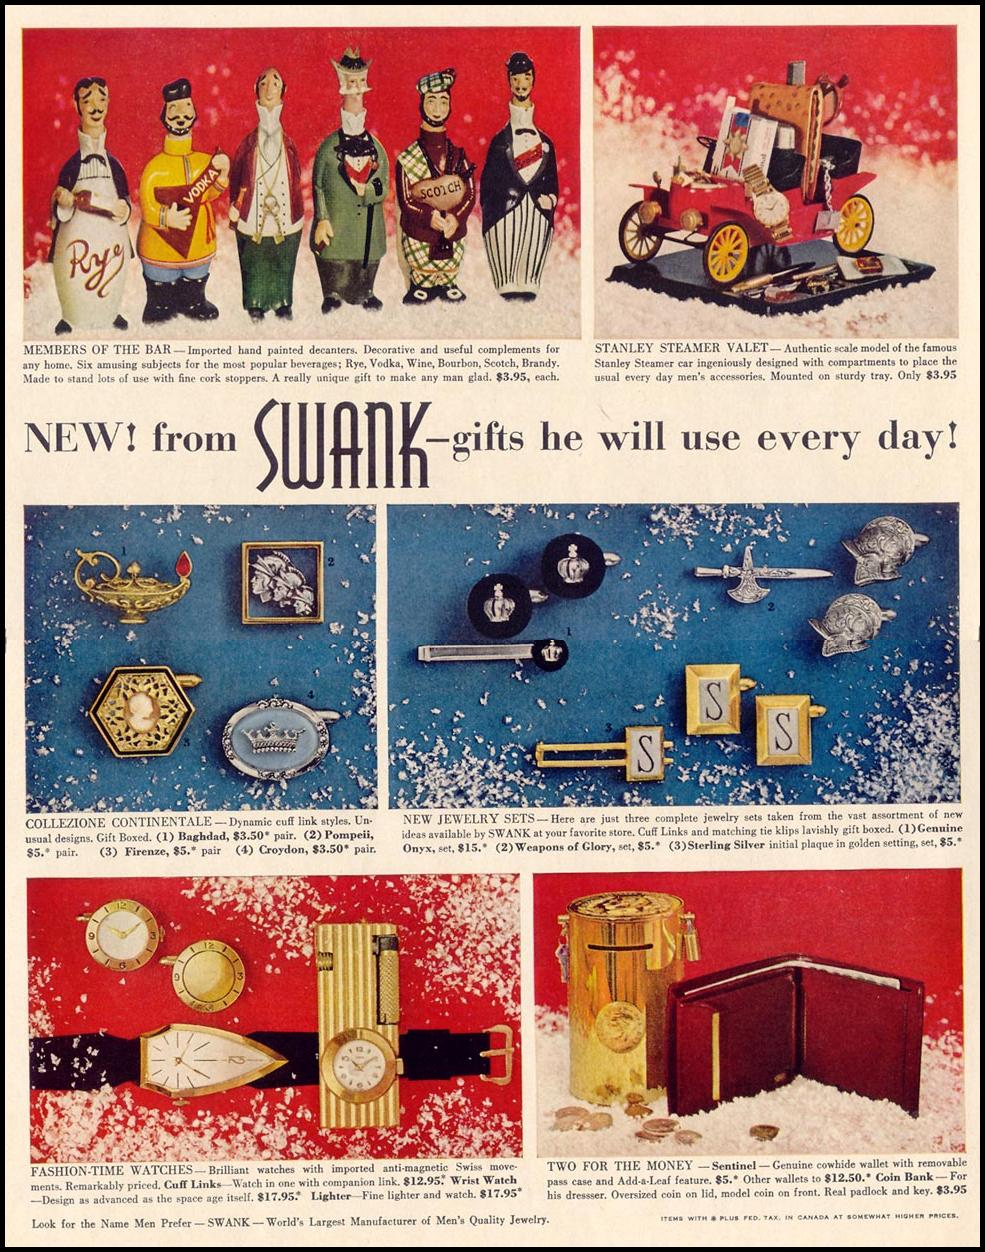 SWANK MEN'S JEWELERY LIFE 12/14/1959 p. 48